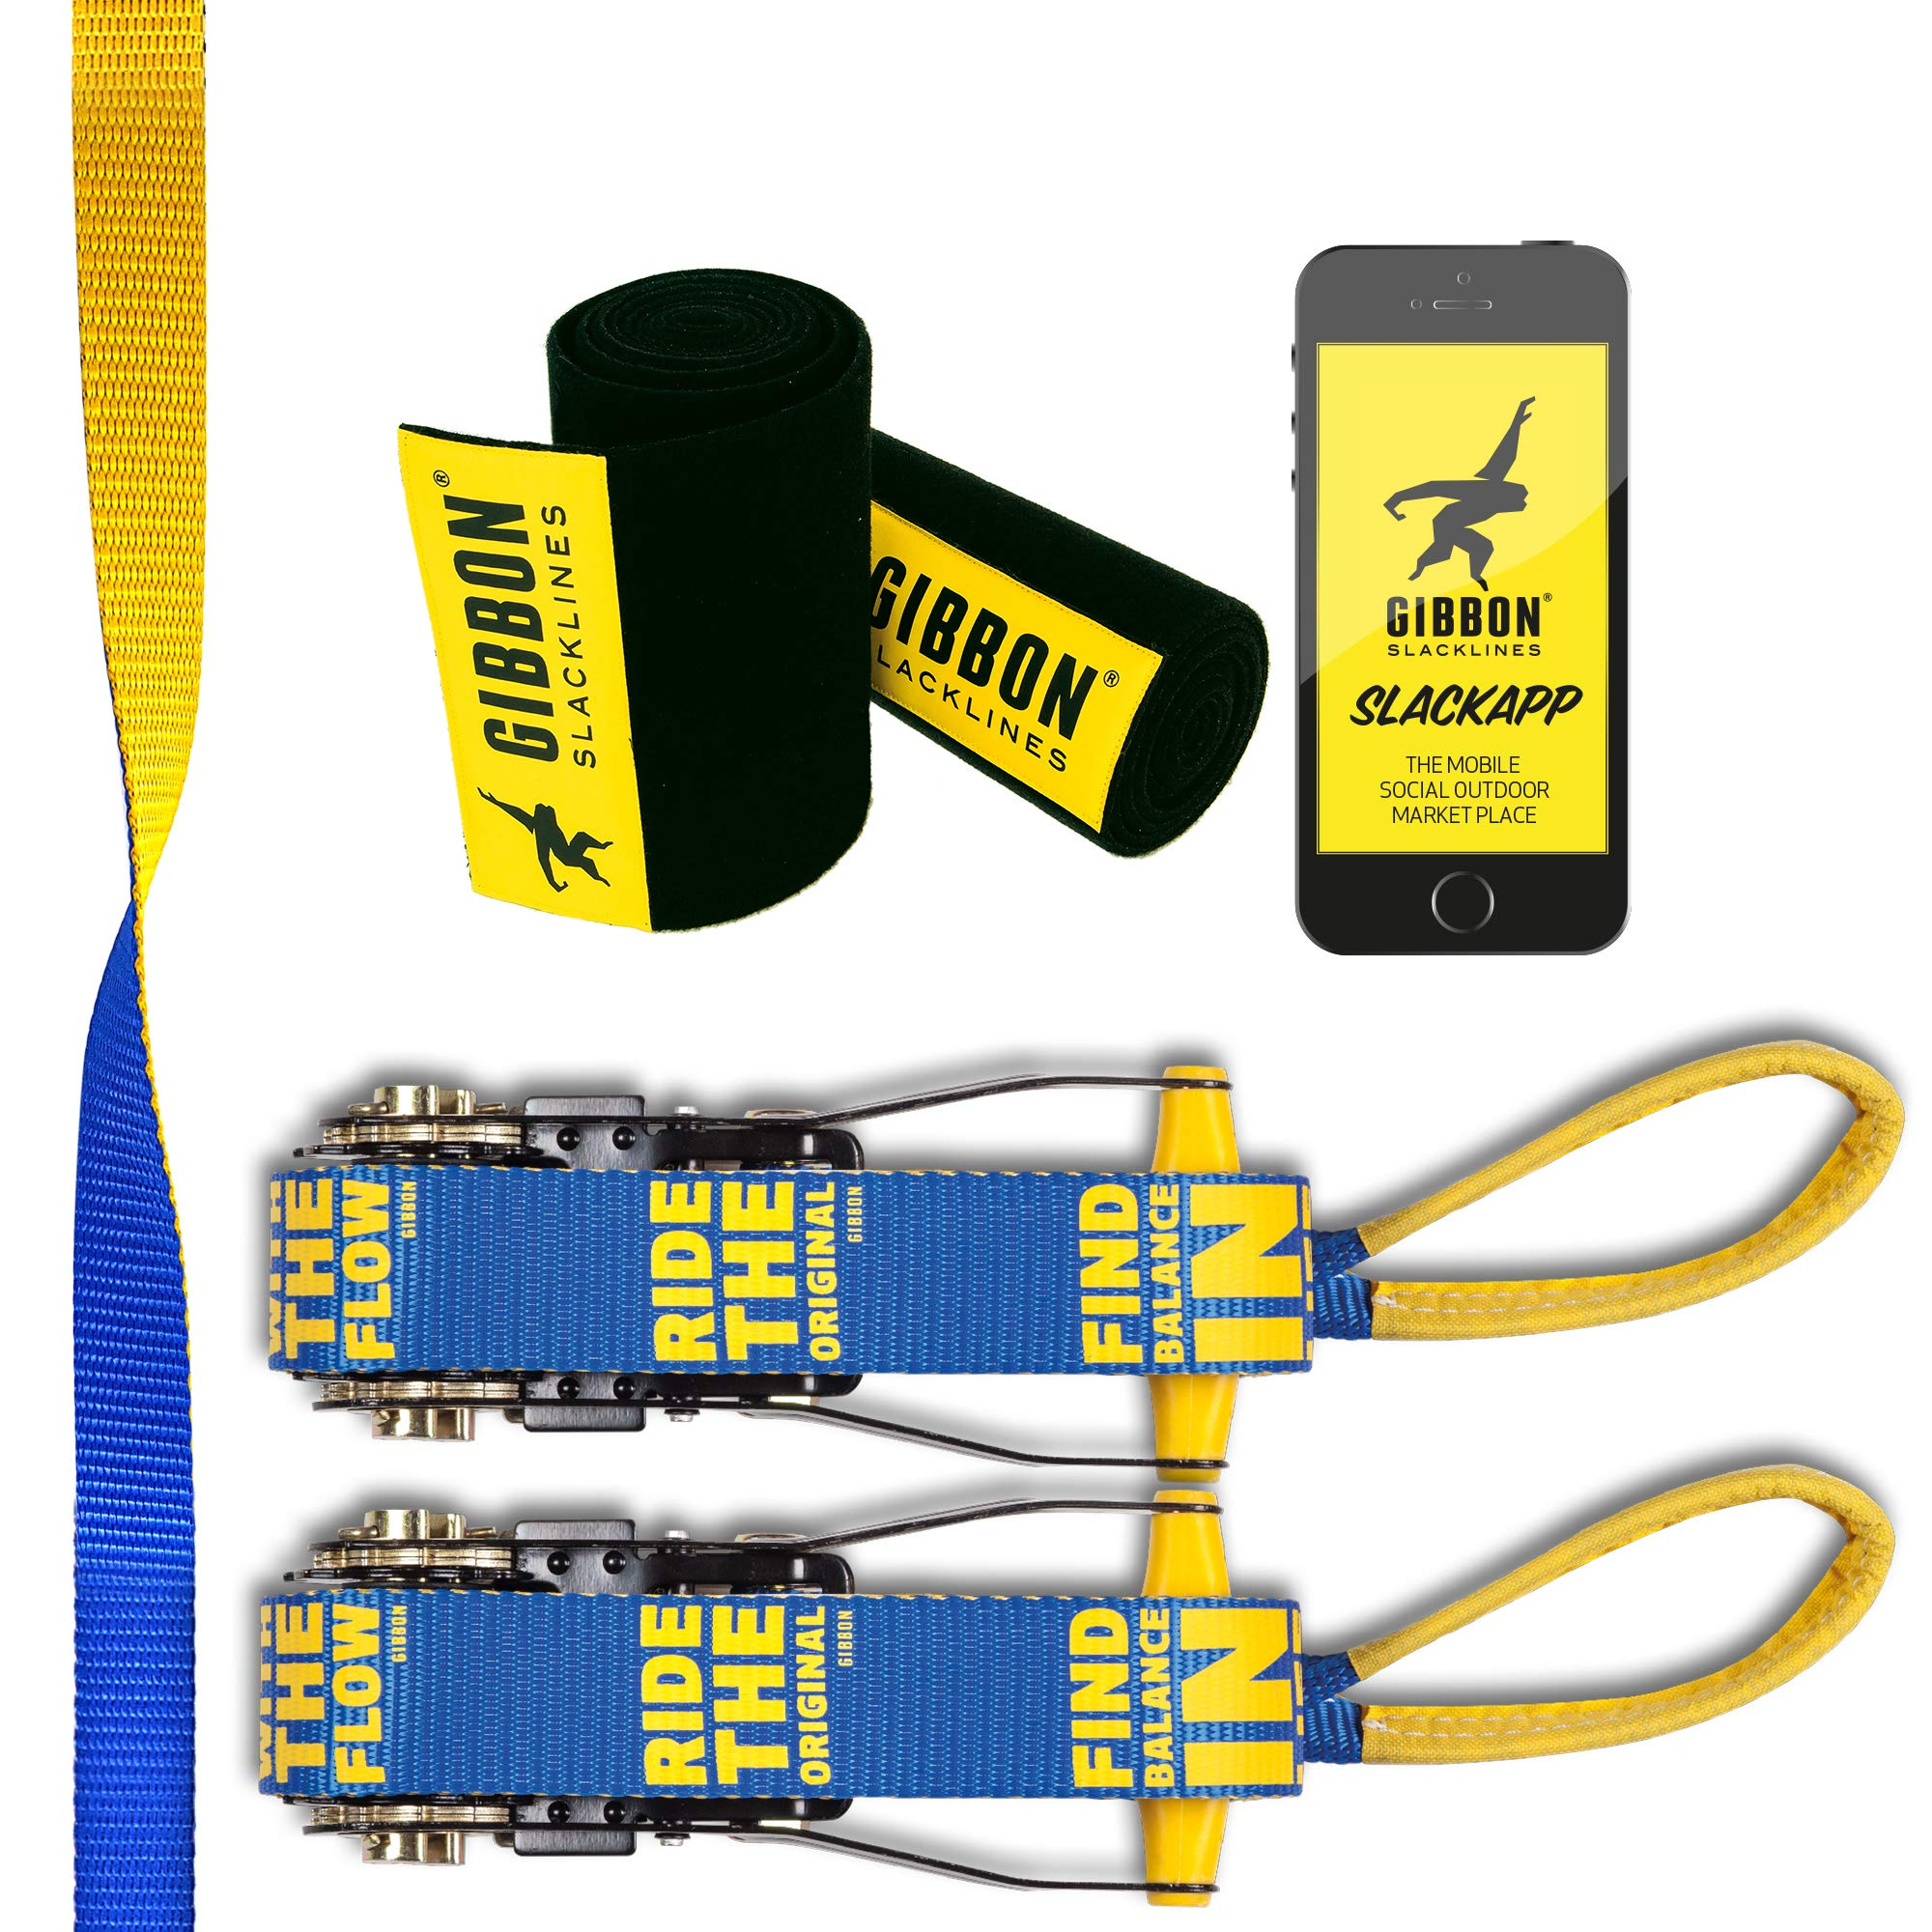 Gibbon Slacklines Flowline with treewear, Yellow/Blue, 82ft (74 ft line + 8ft Ratchet Strap with Reinforced Loop) 1'' line, 2 x 2 Ratchet Straps of 2.5m Length, Tree and line Protection (Black Felt) by Gibbon Slacklines